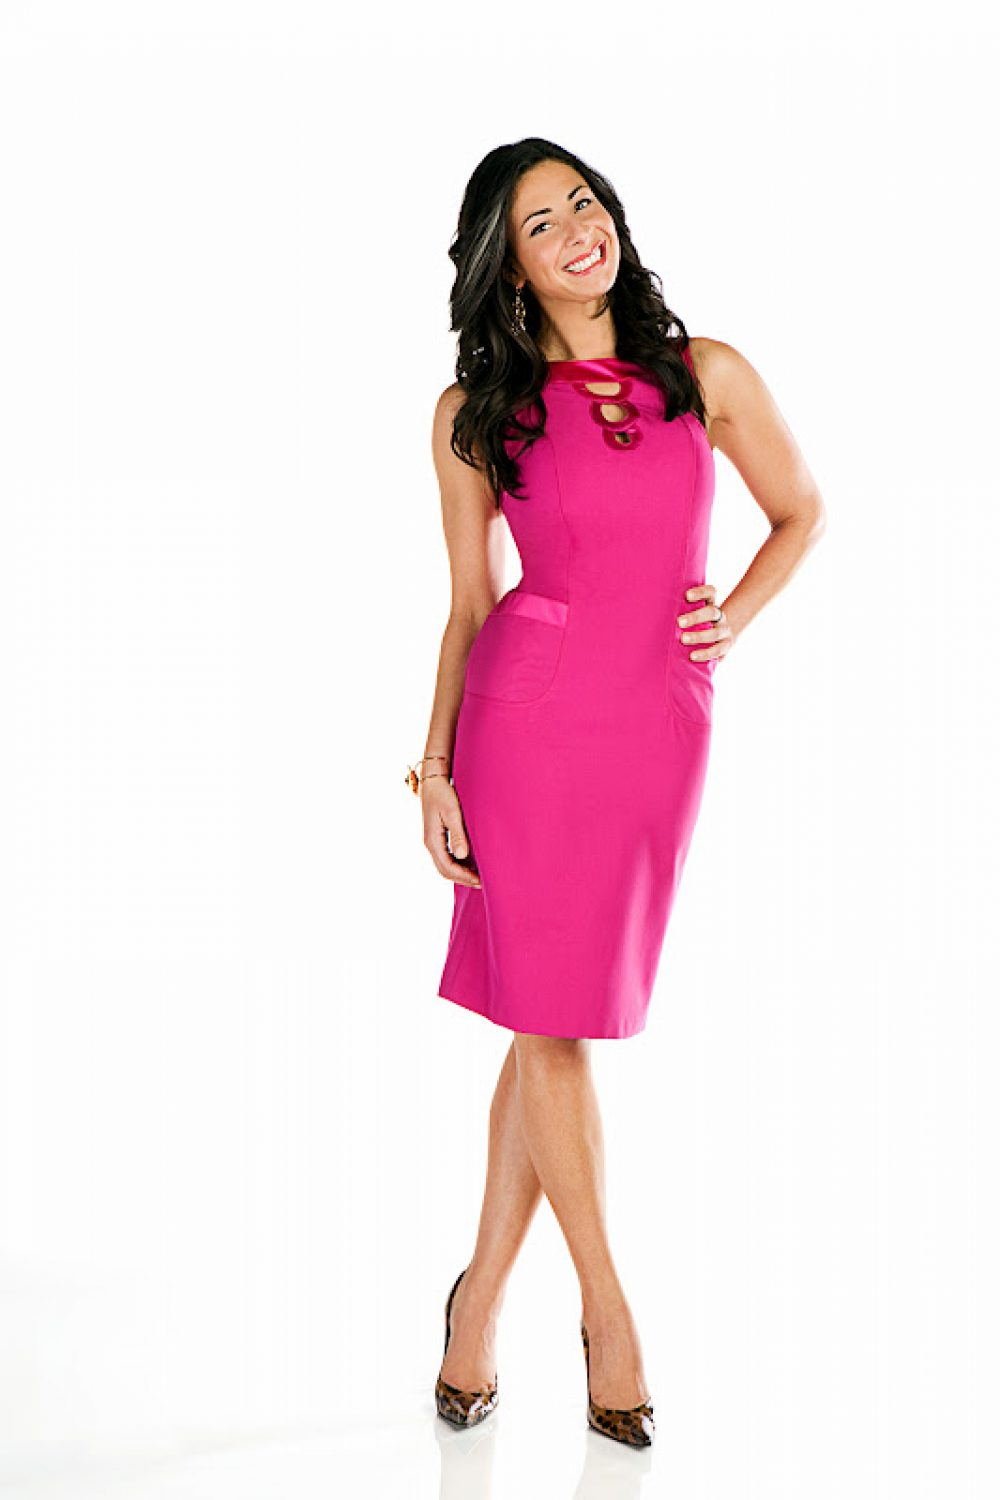 Fashionably late with stacy london 69